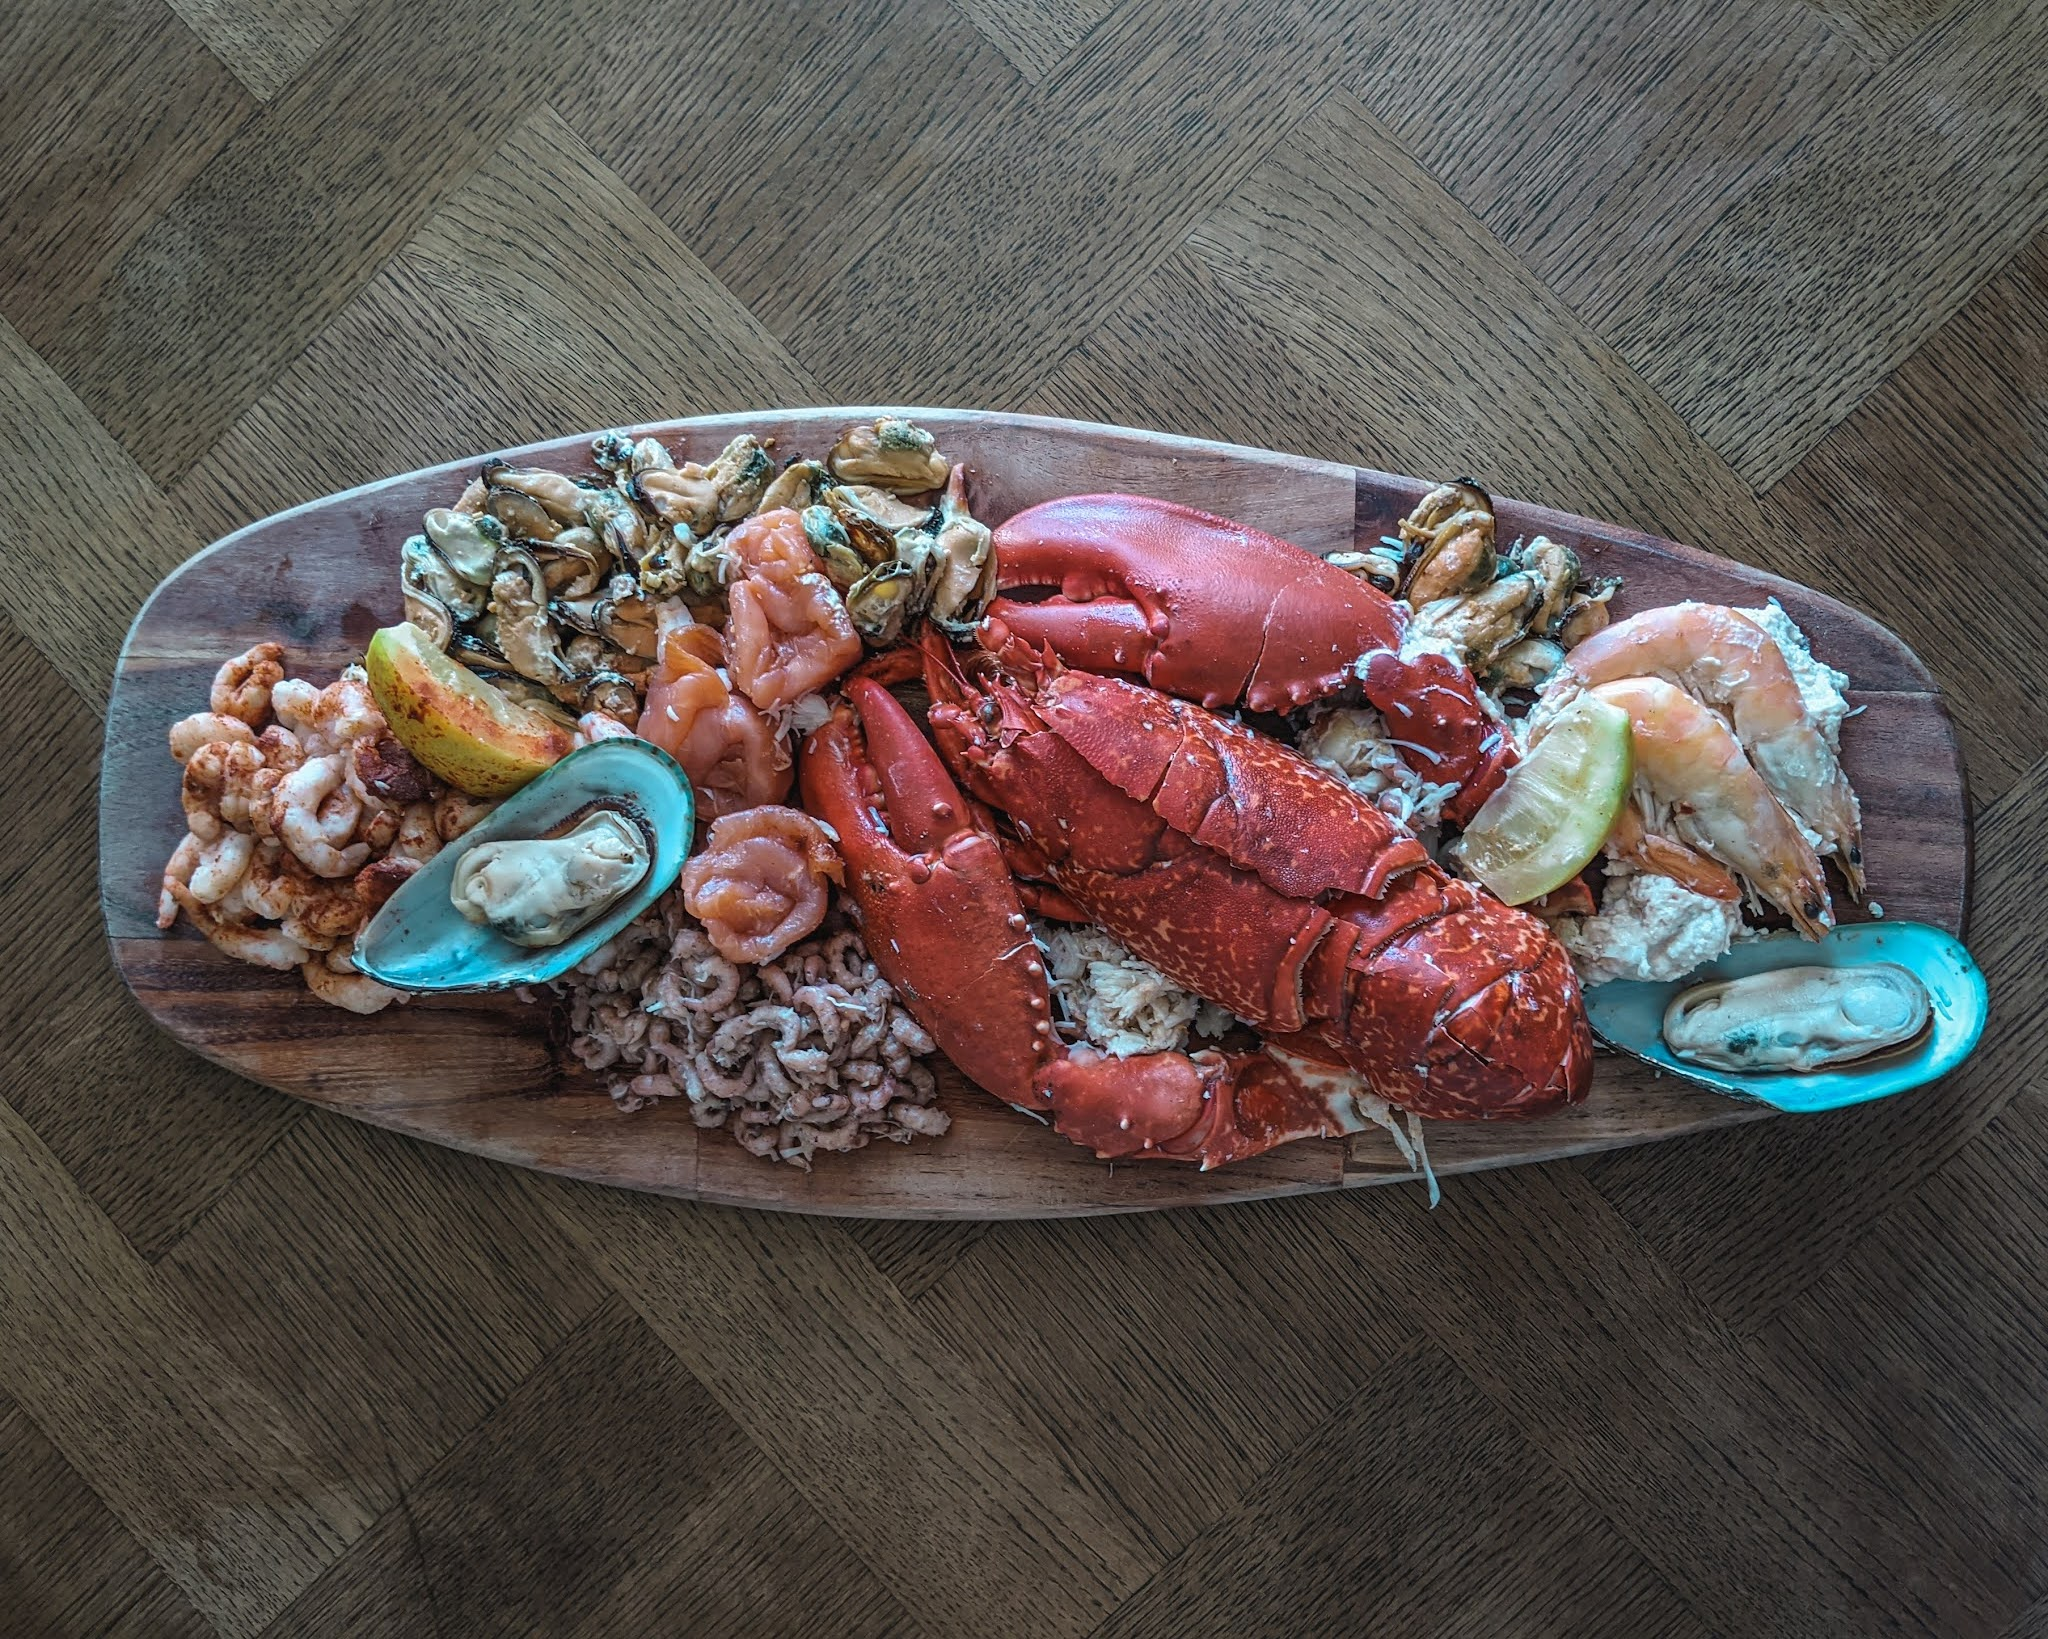 ferry fish luxury seafood graze box visit dumfries and galloway